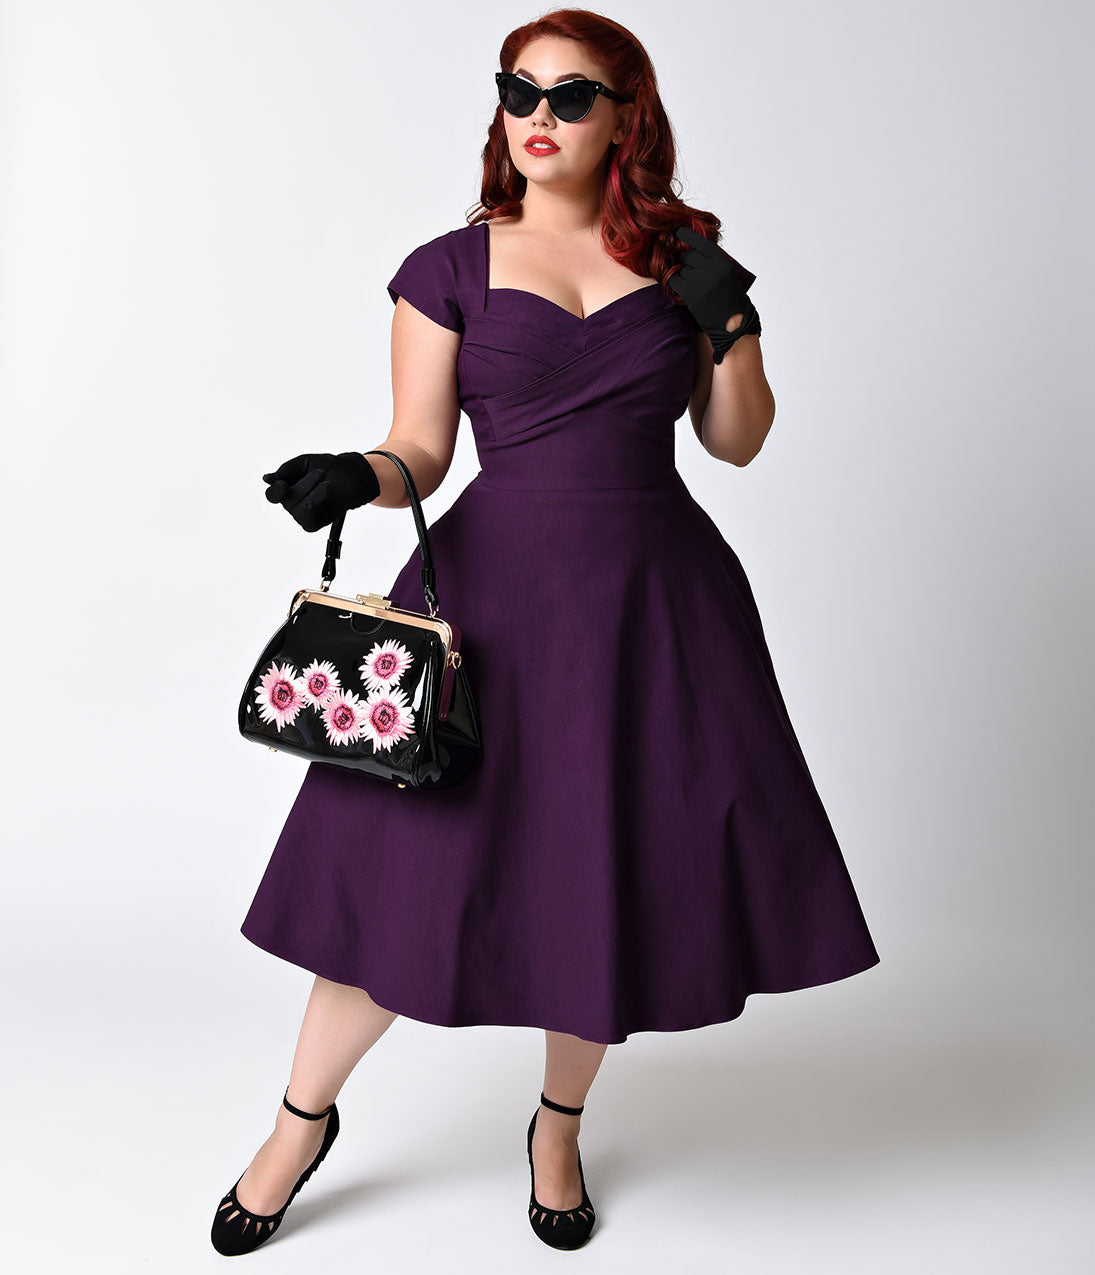 Plus Size Vintage Pin Up Clothing   Dresses – Unique Vintage bffff67495f5